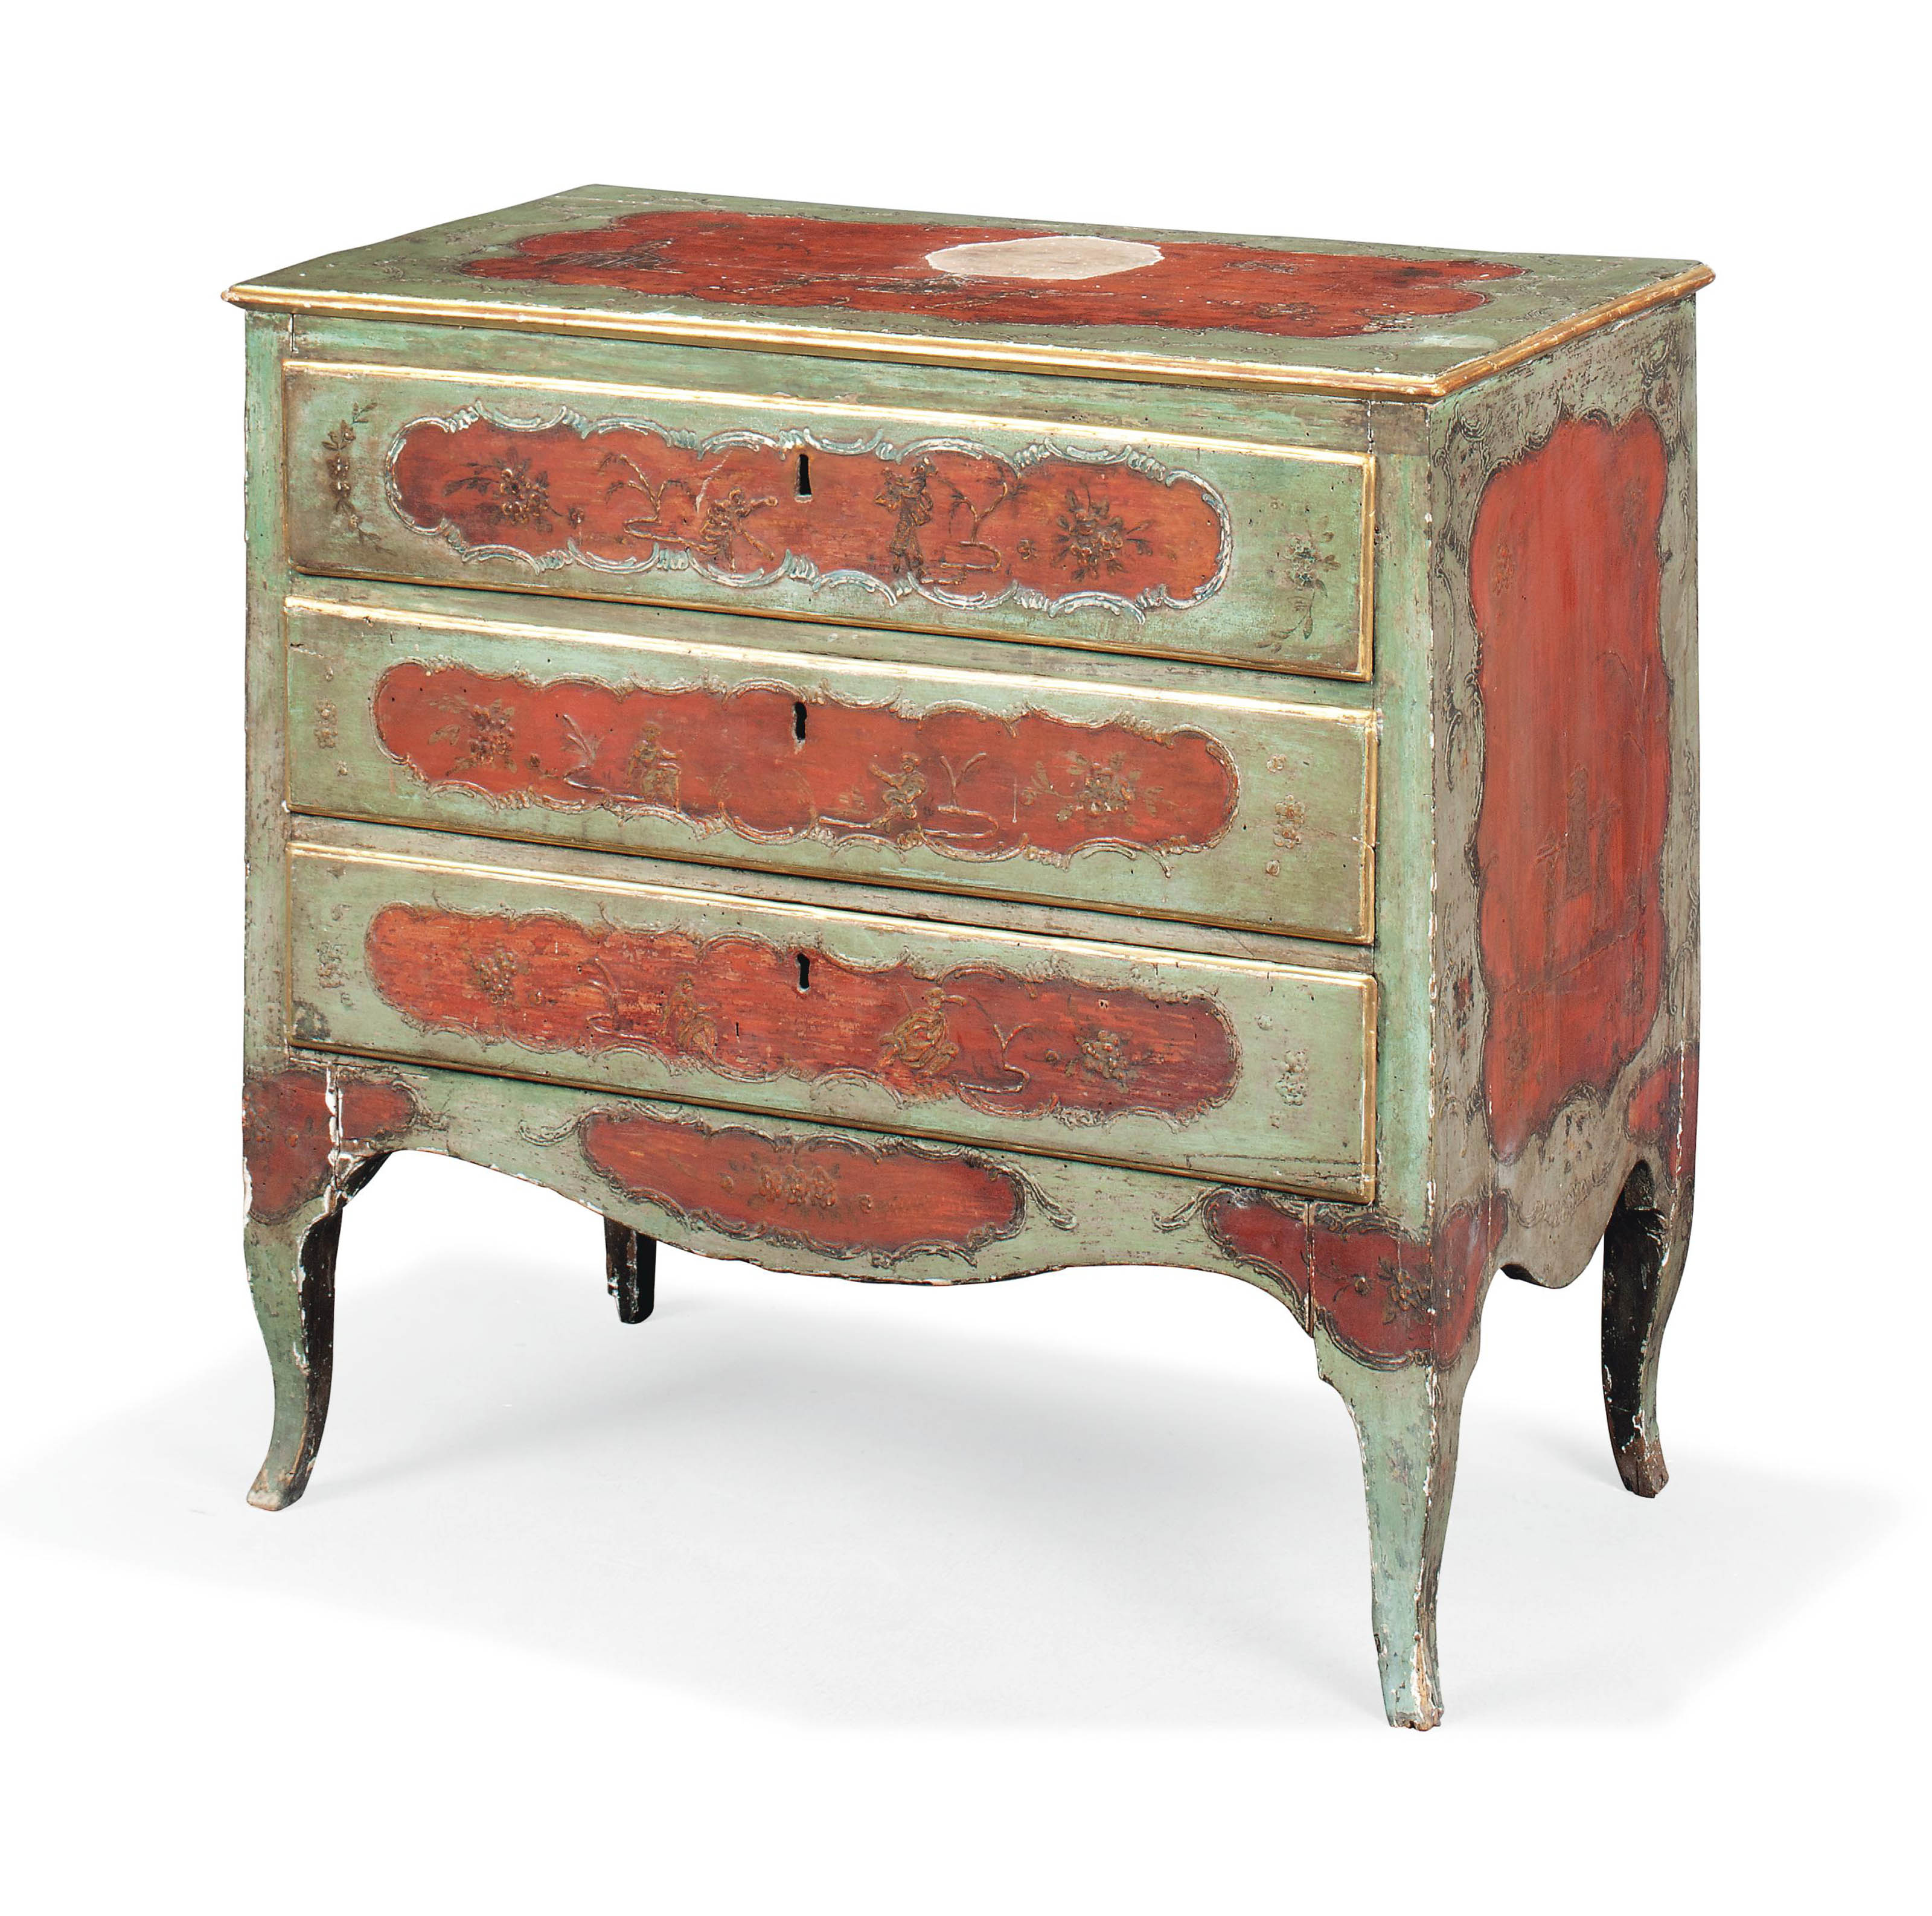 AN ITALIAN CHINOISERIE RED AND